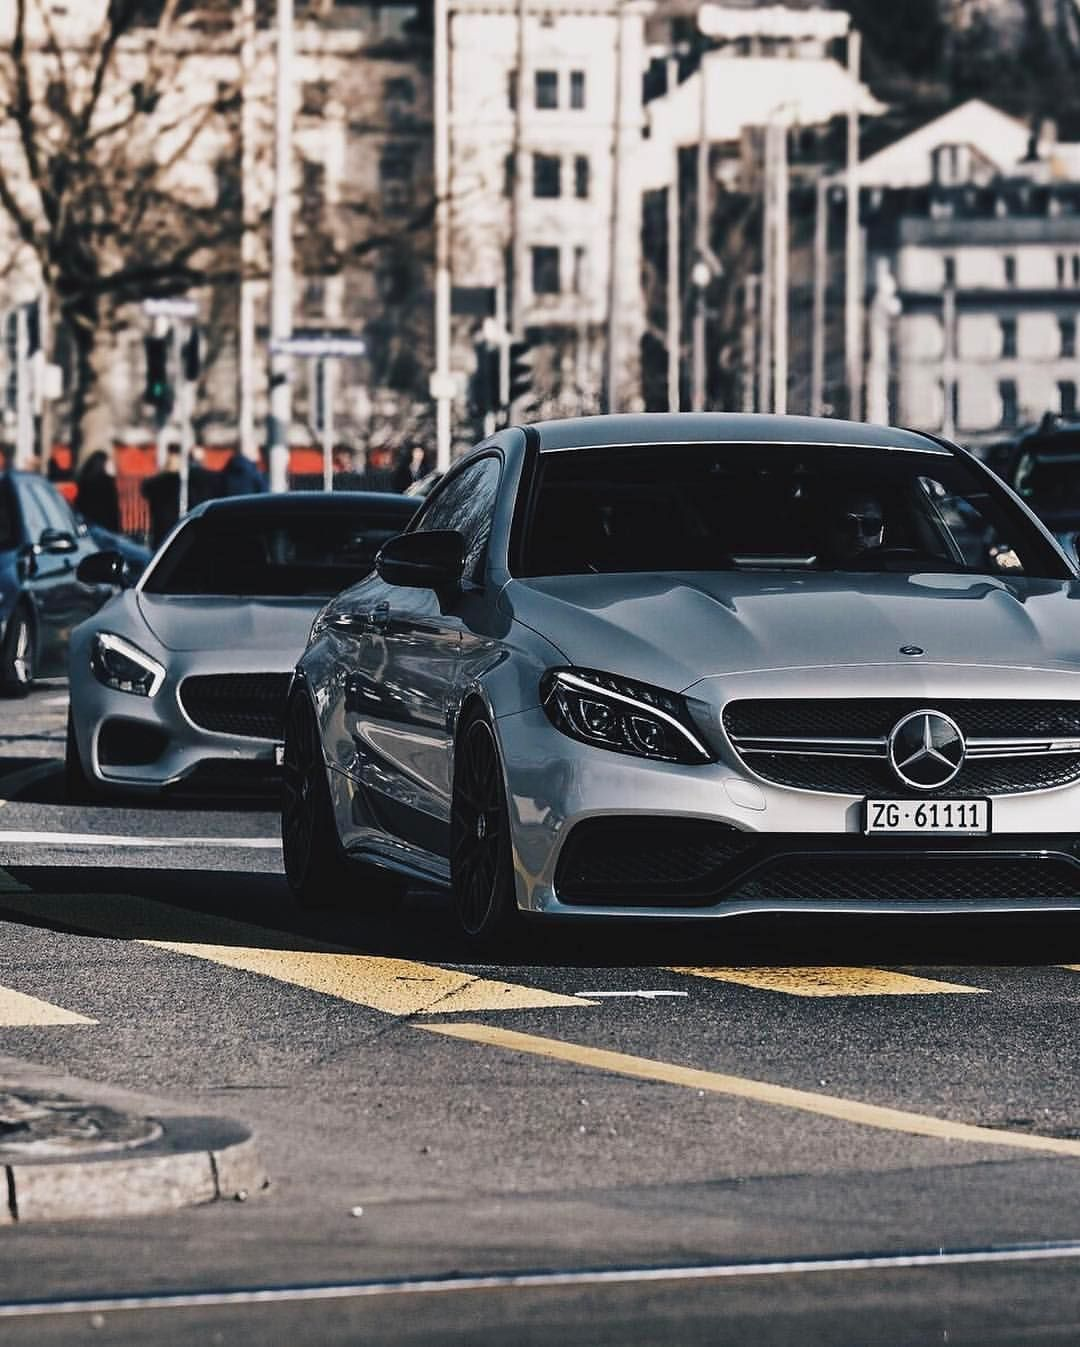 """61 Likes, 2 Comments - CarsUnlimitedPage (@carsunlimitedpage) on Instagram: """"///AMG SQUAD #mercedes #mercedesamg #amg #mercedesbenz #mercedesc63s #exotic #squad"""""""